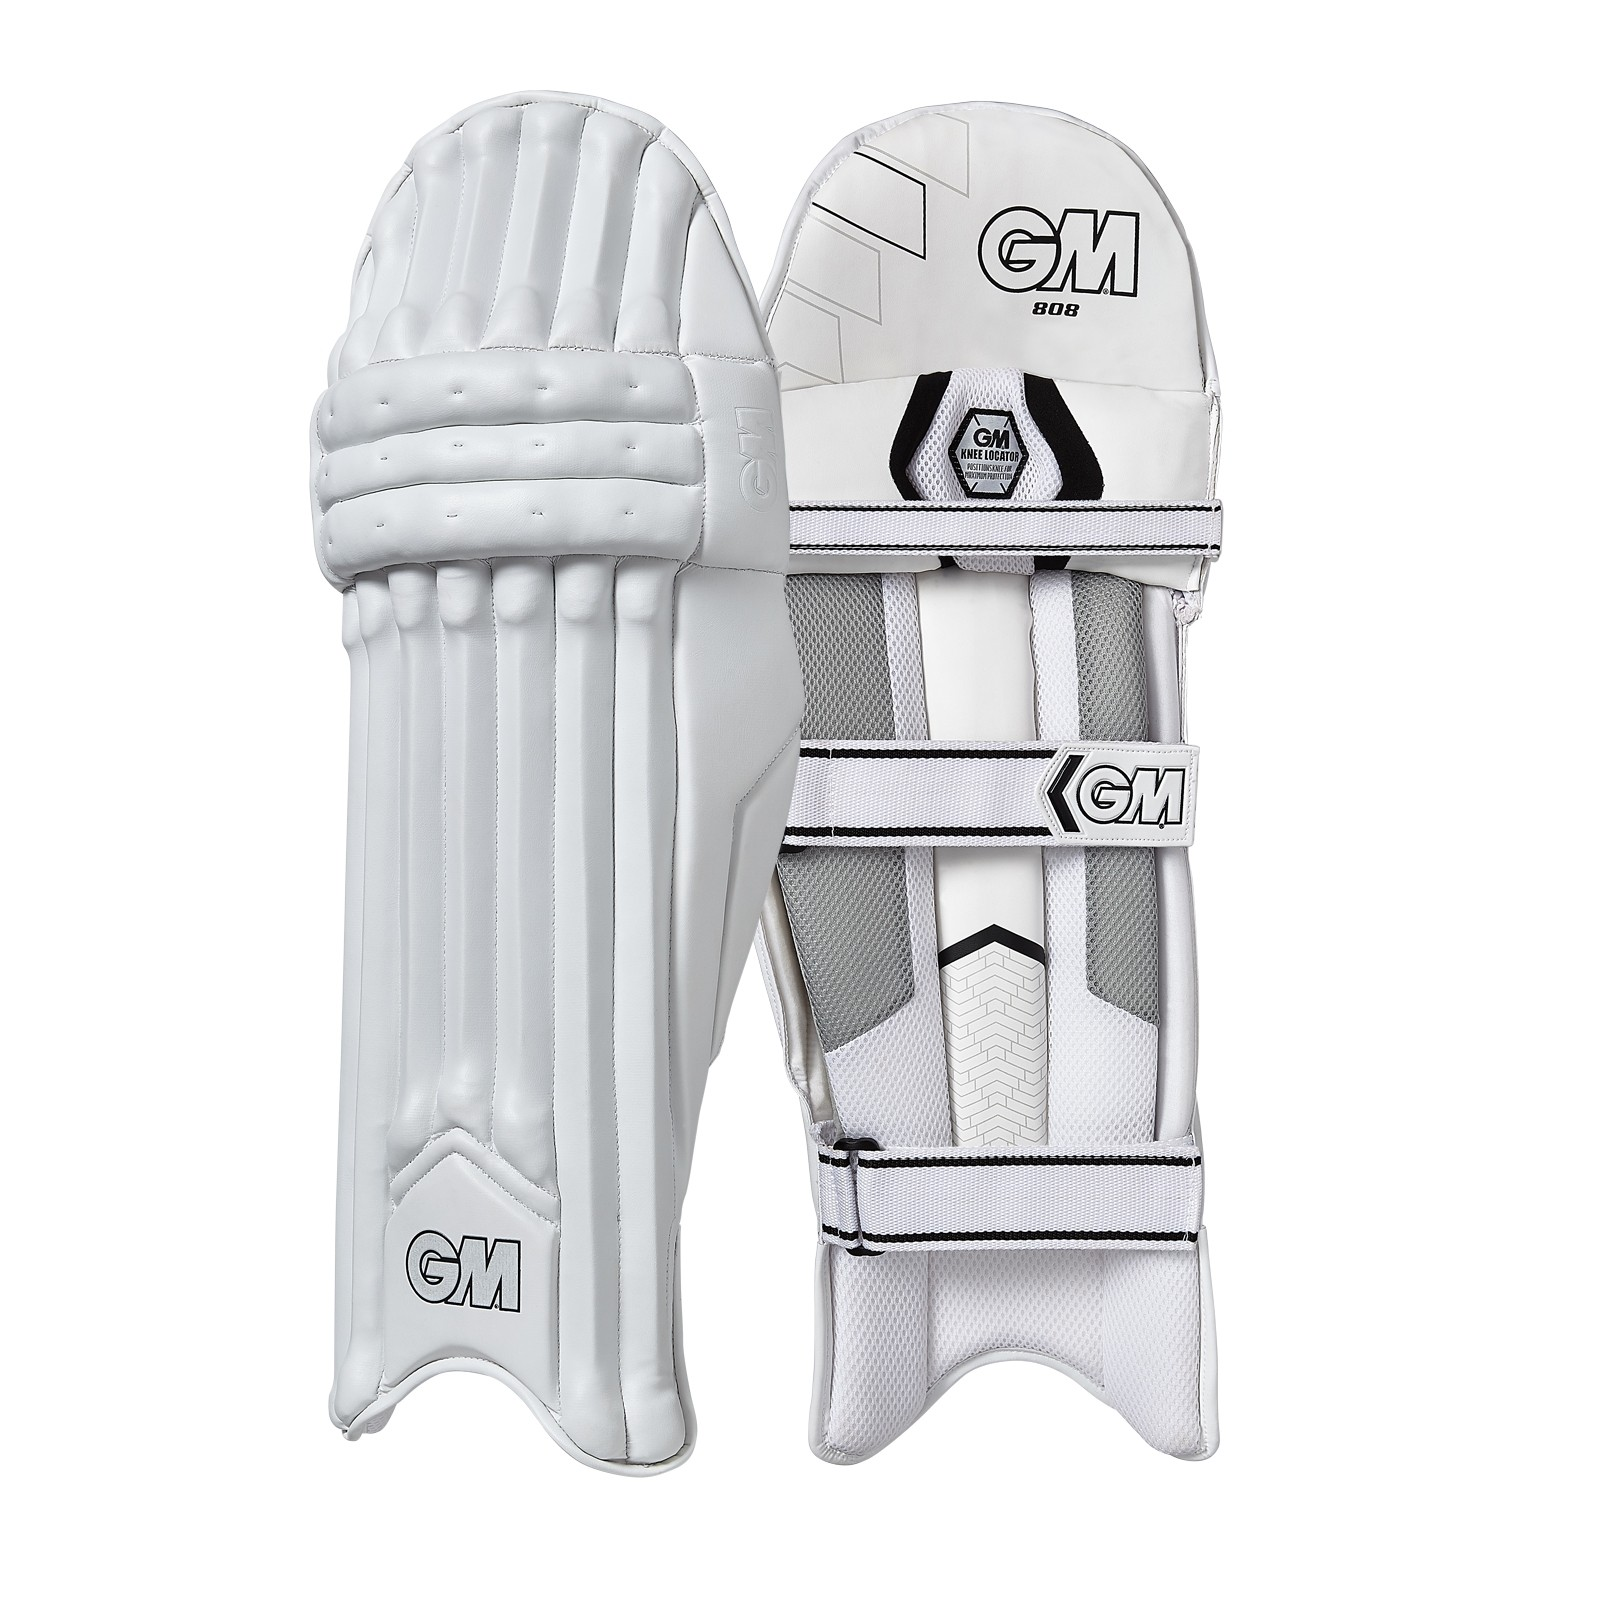 808 BATTING PADS